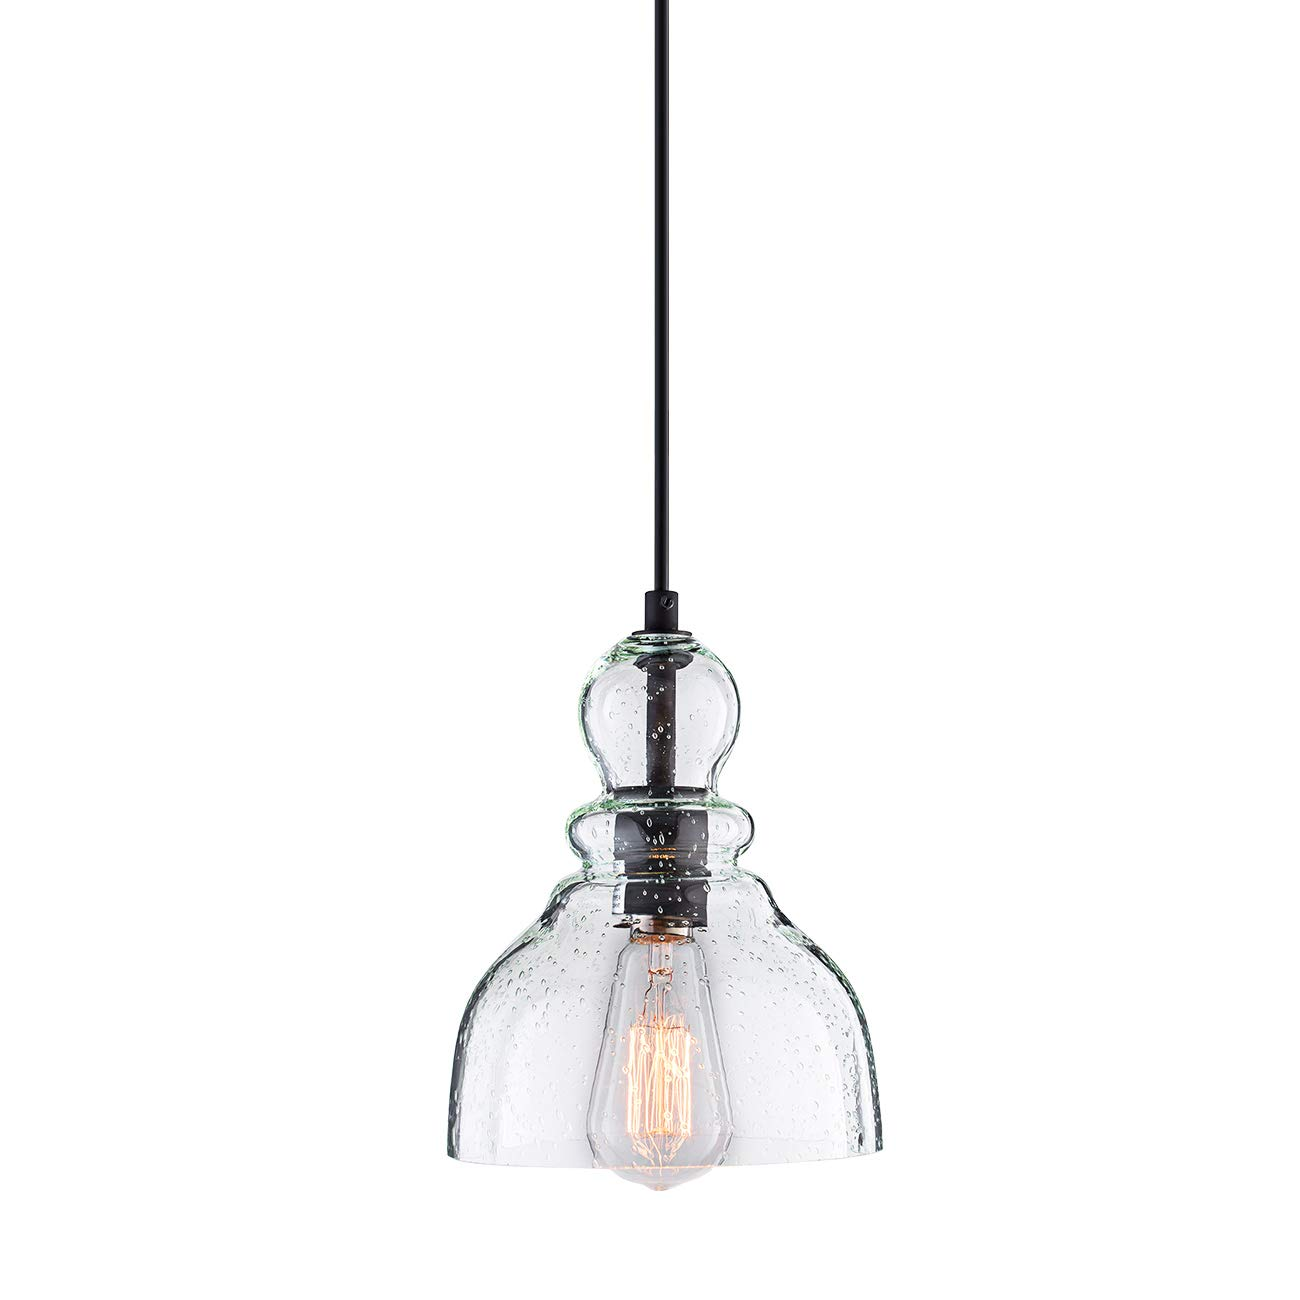 Lanros Industrial Mini Pendant Lighting with Handblown Clear Seeded Glass Shade, Adjustable Edison Farmhouse Kitchen Lamp for Kitchen Island, Restaurants, Hotels and Shops, 1-Pack